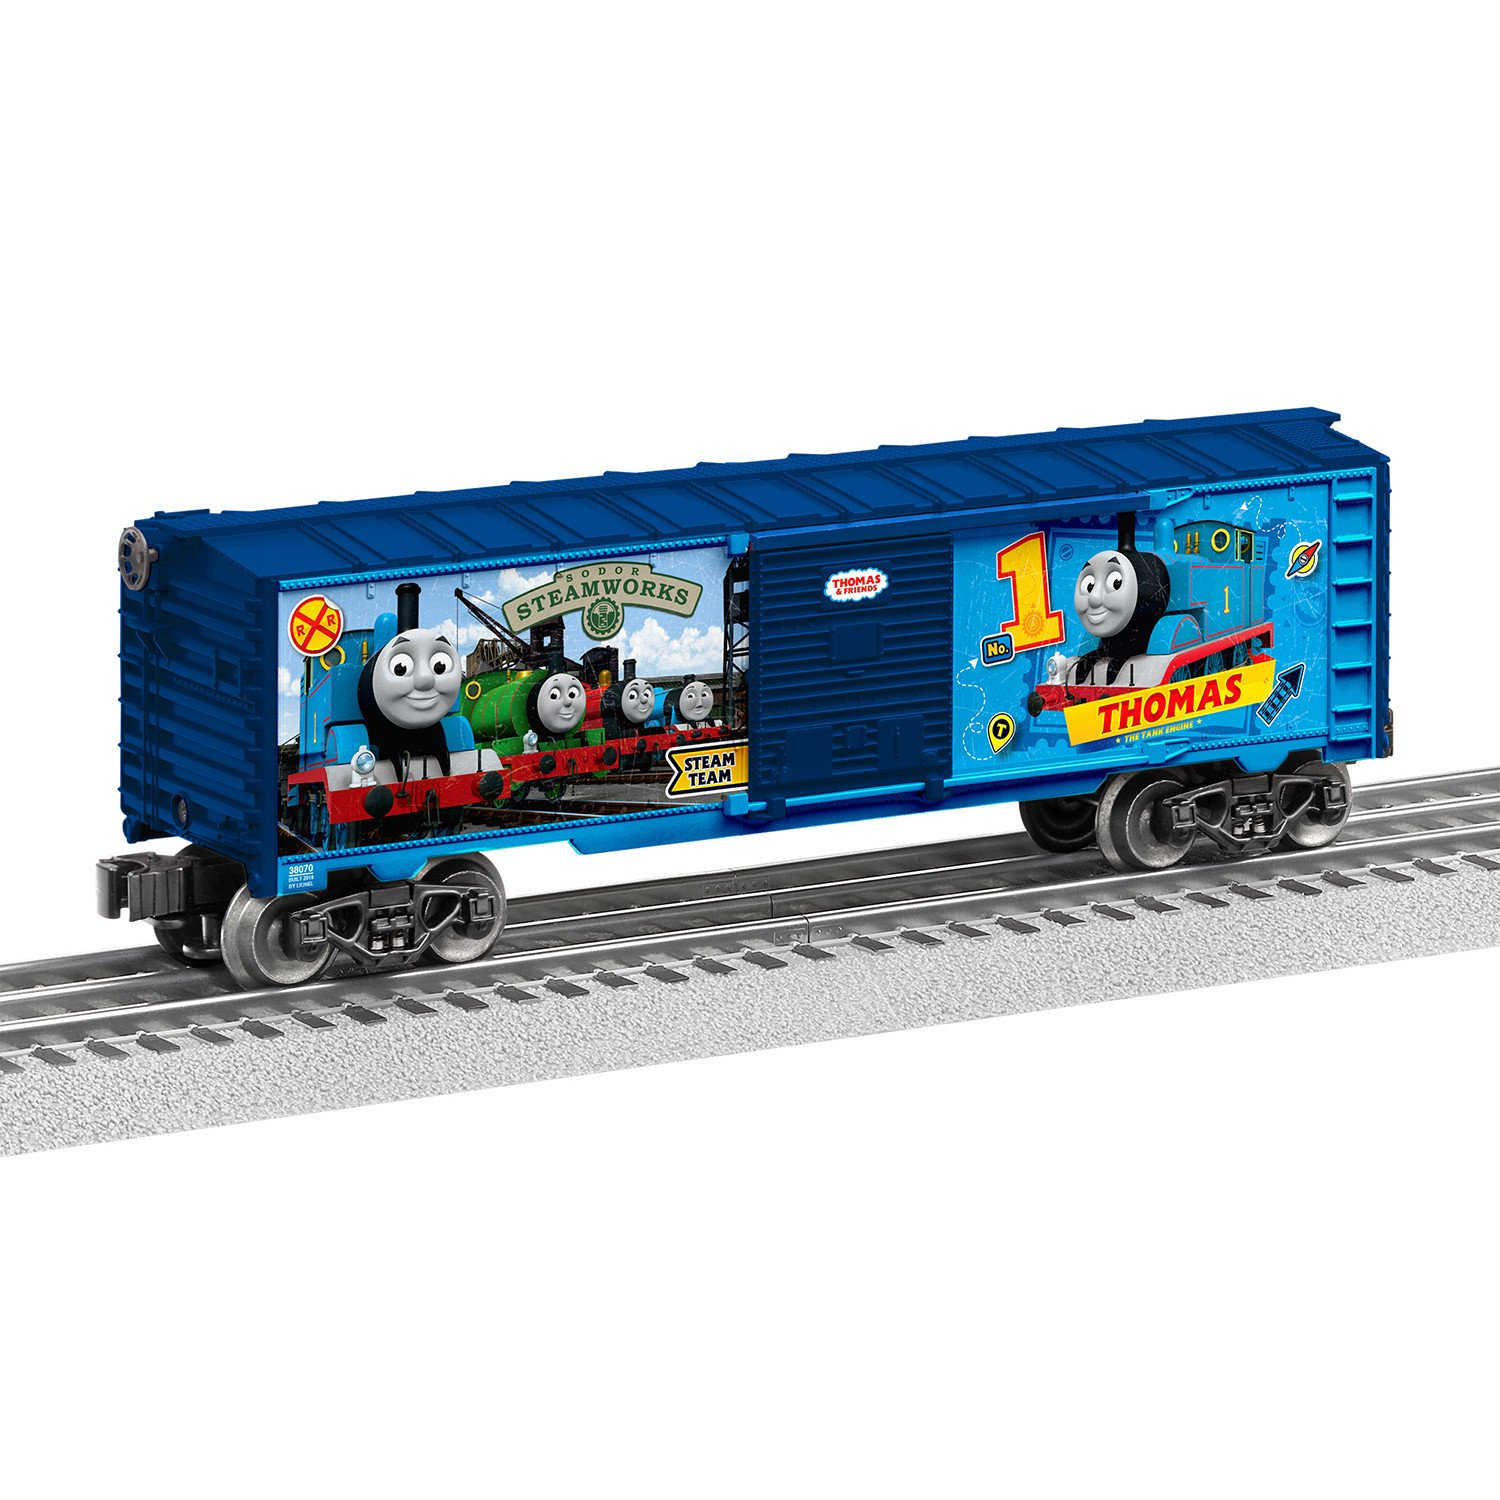 Thomas the Train Bedroom Decor Luxury Lionel Thomas & Friends Thomas Engine O Gauge Model Train Boxcar Walmart